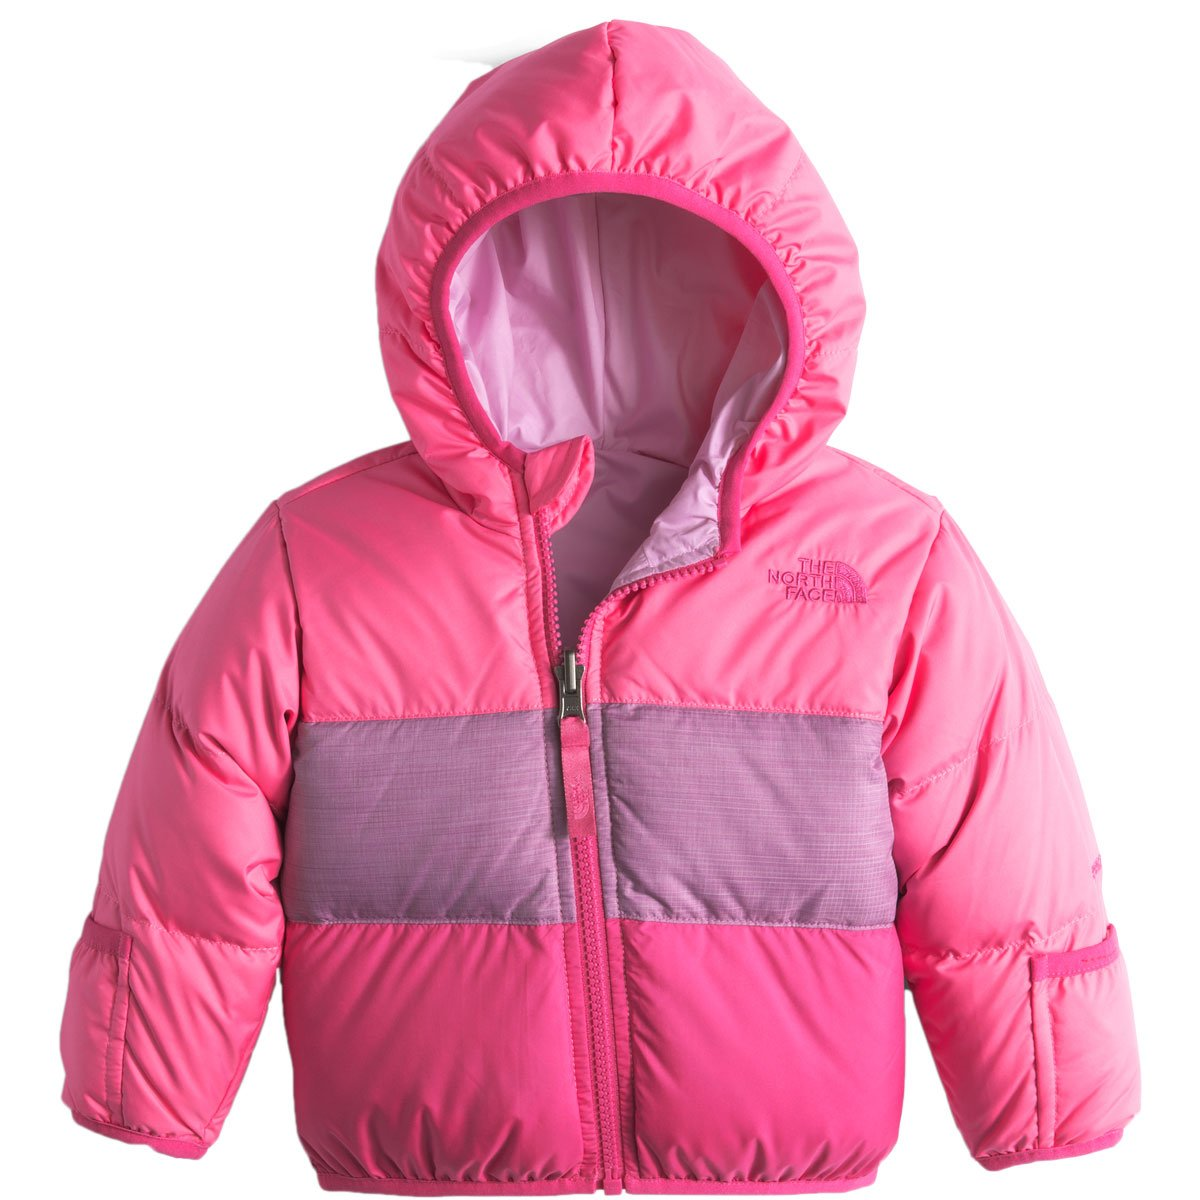 Baby Girls' Reversible Moondoggy Jacket - cha cha pink, 18 - 24 months